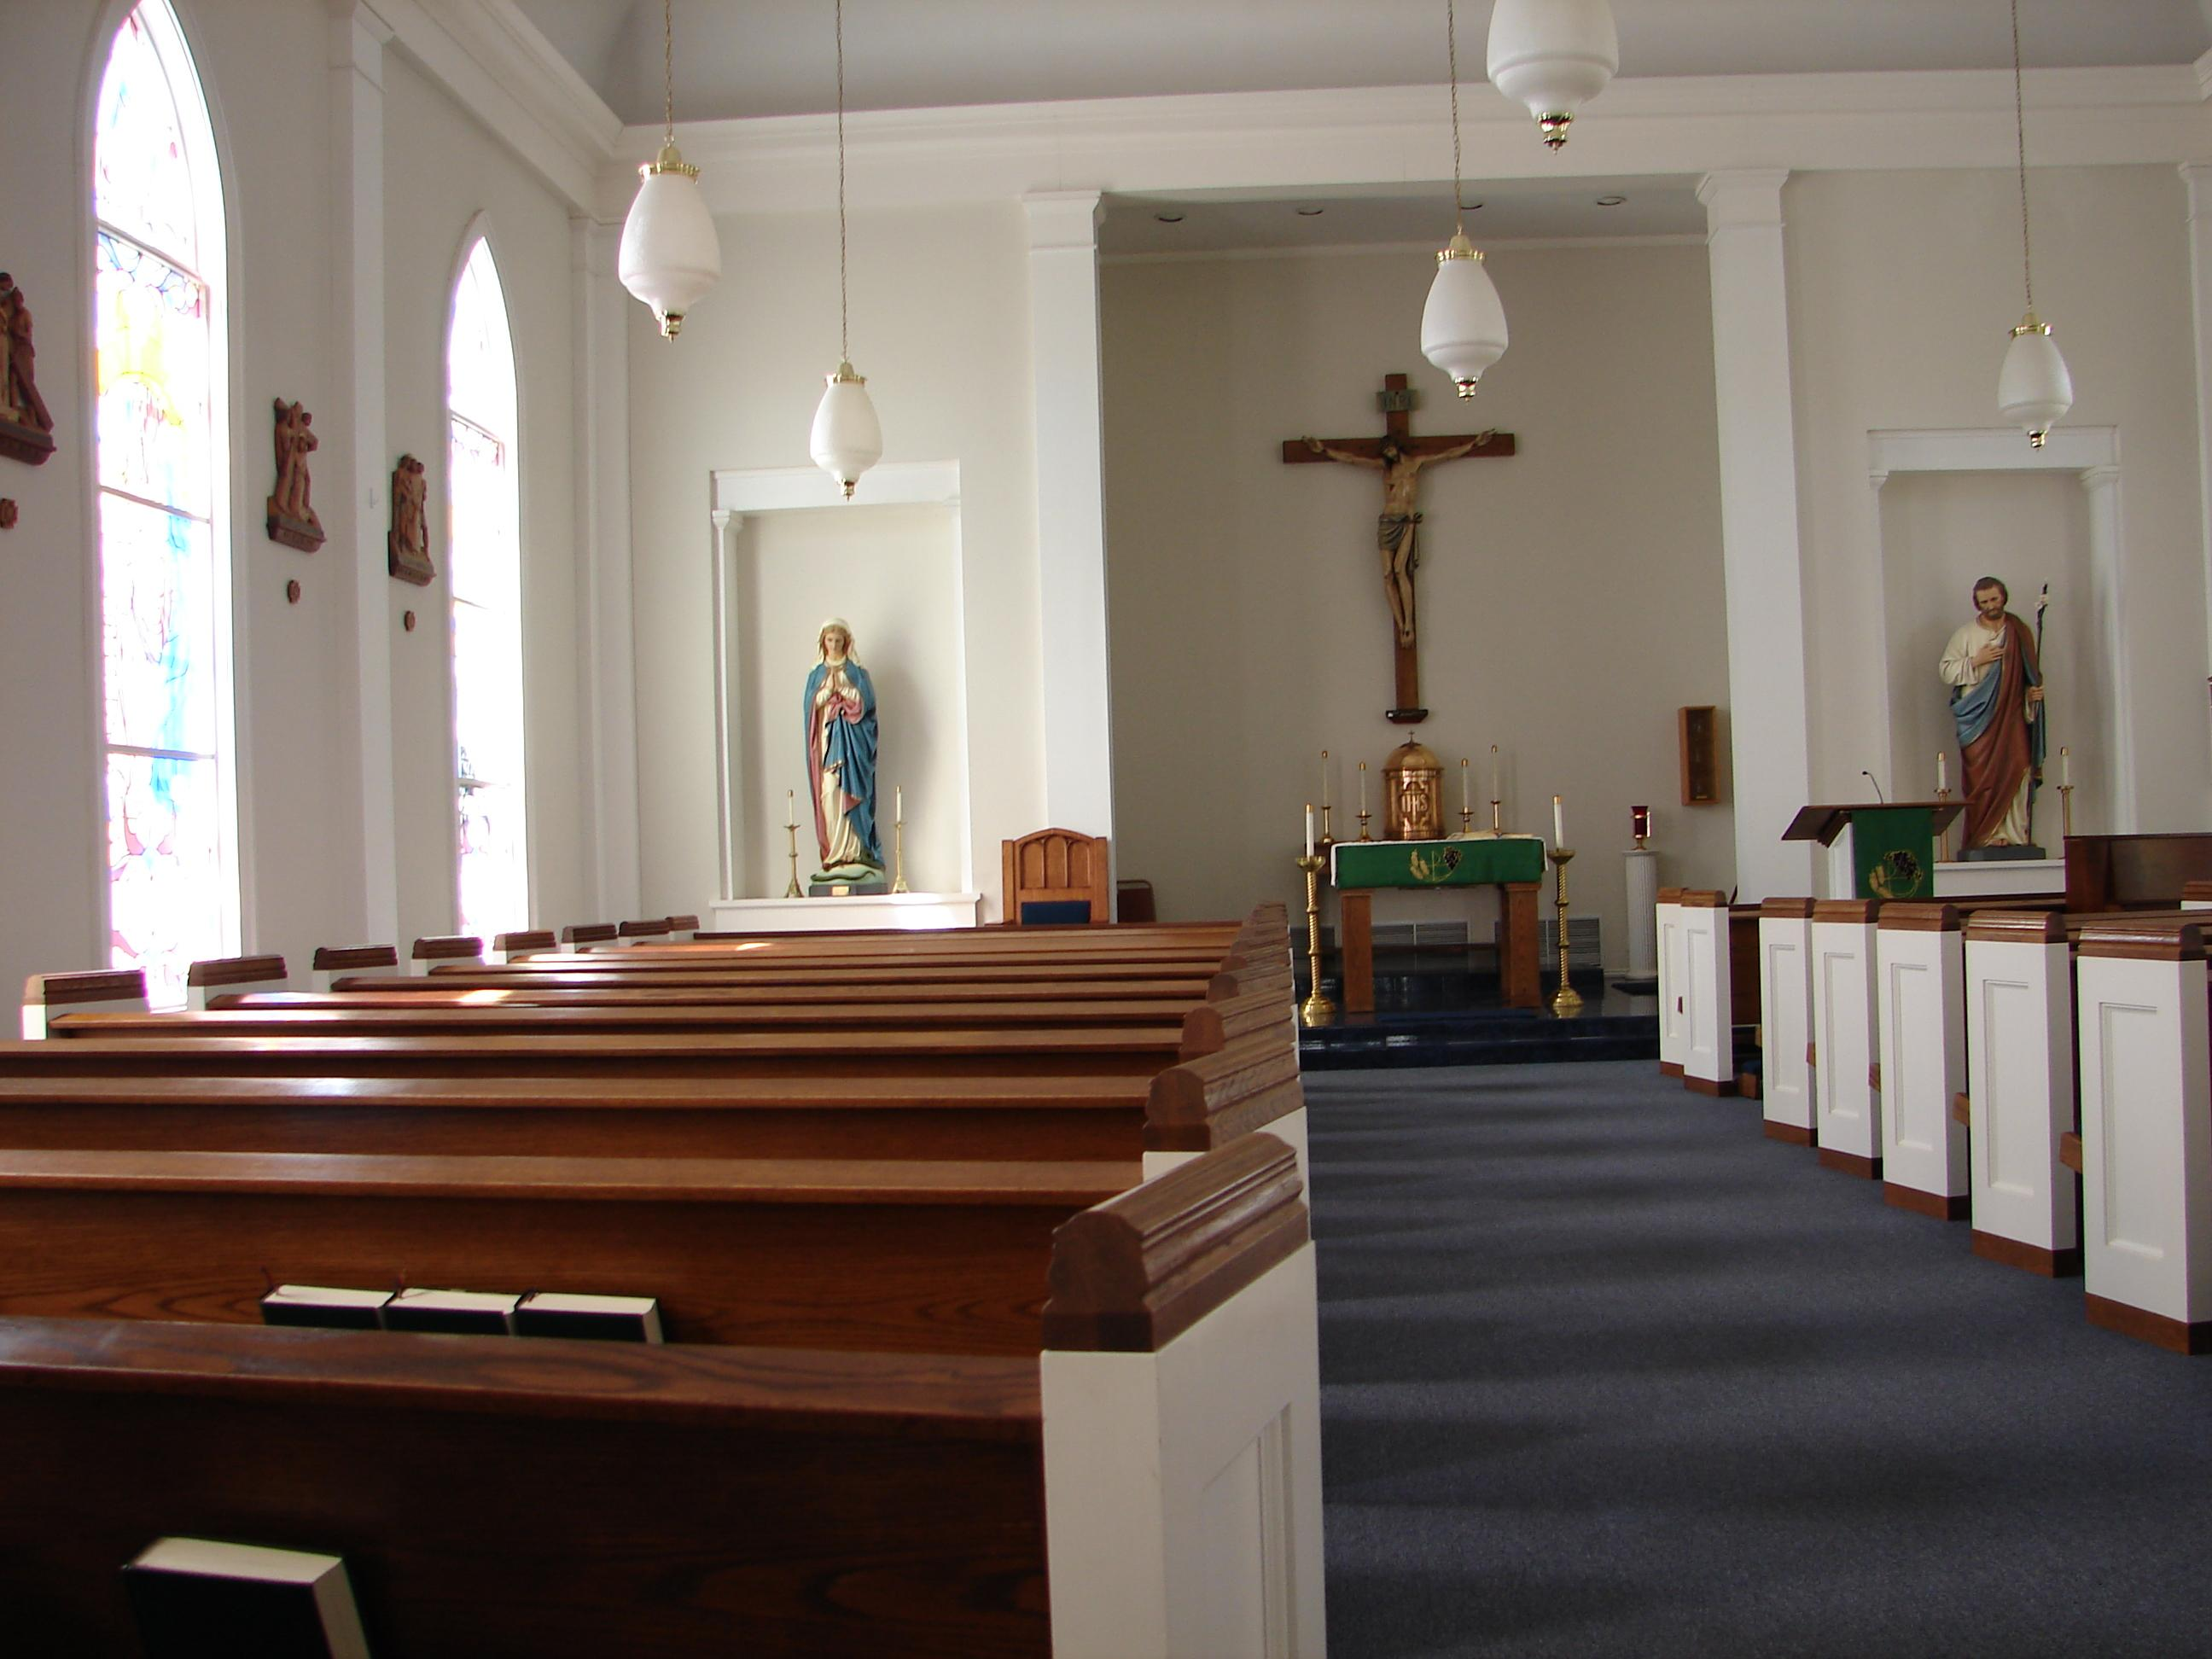 churchs ferry catholic single women Catholic dating that's focused on the person swipe leftswipe right that's how most dating sites view online dating at catholic singles, we foster deeper relationships because we focus on your interests and activities, not just your picture.